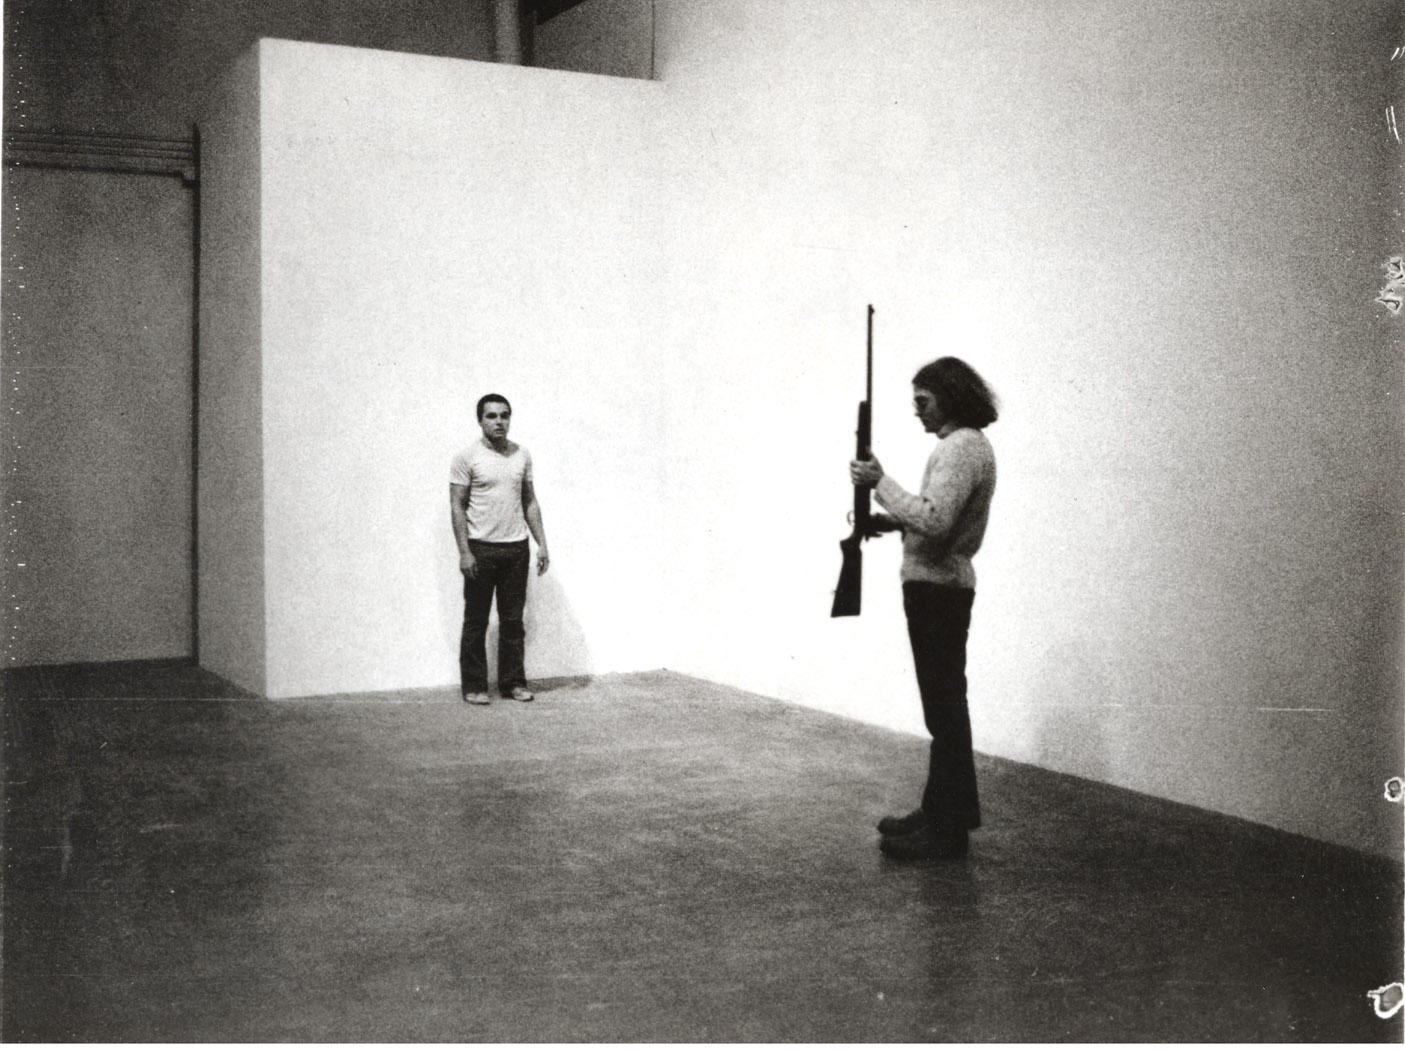 2. Burden_Shoot, 1971